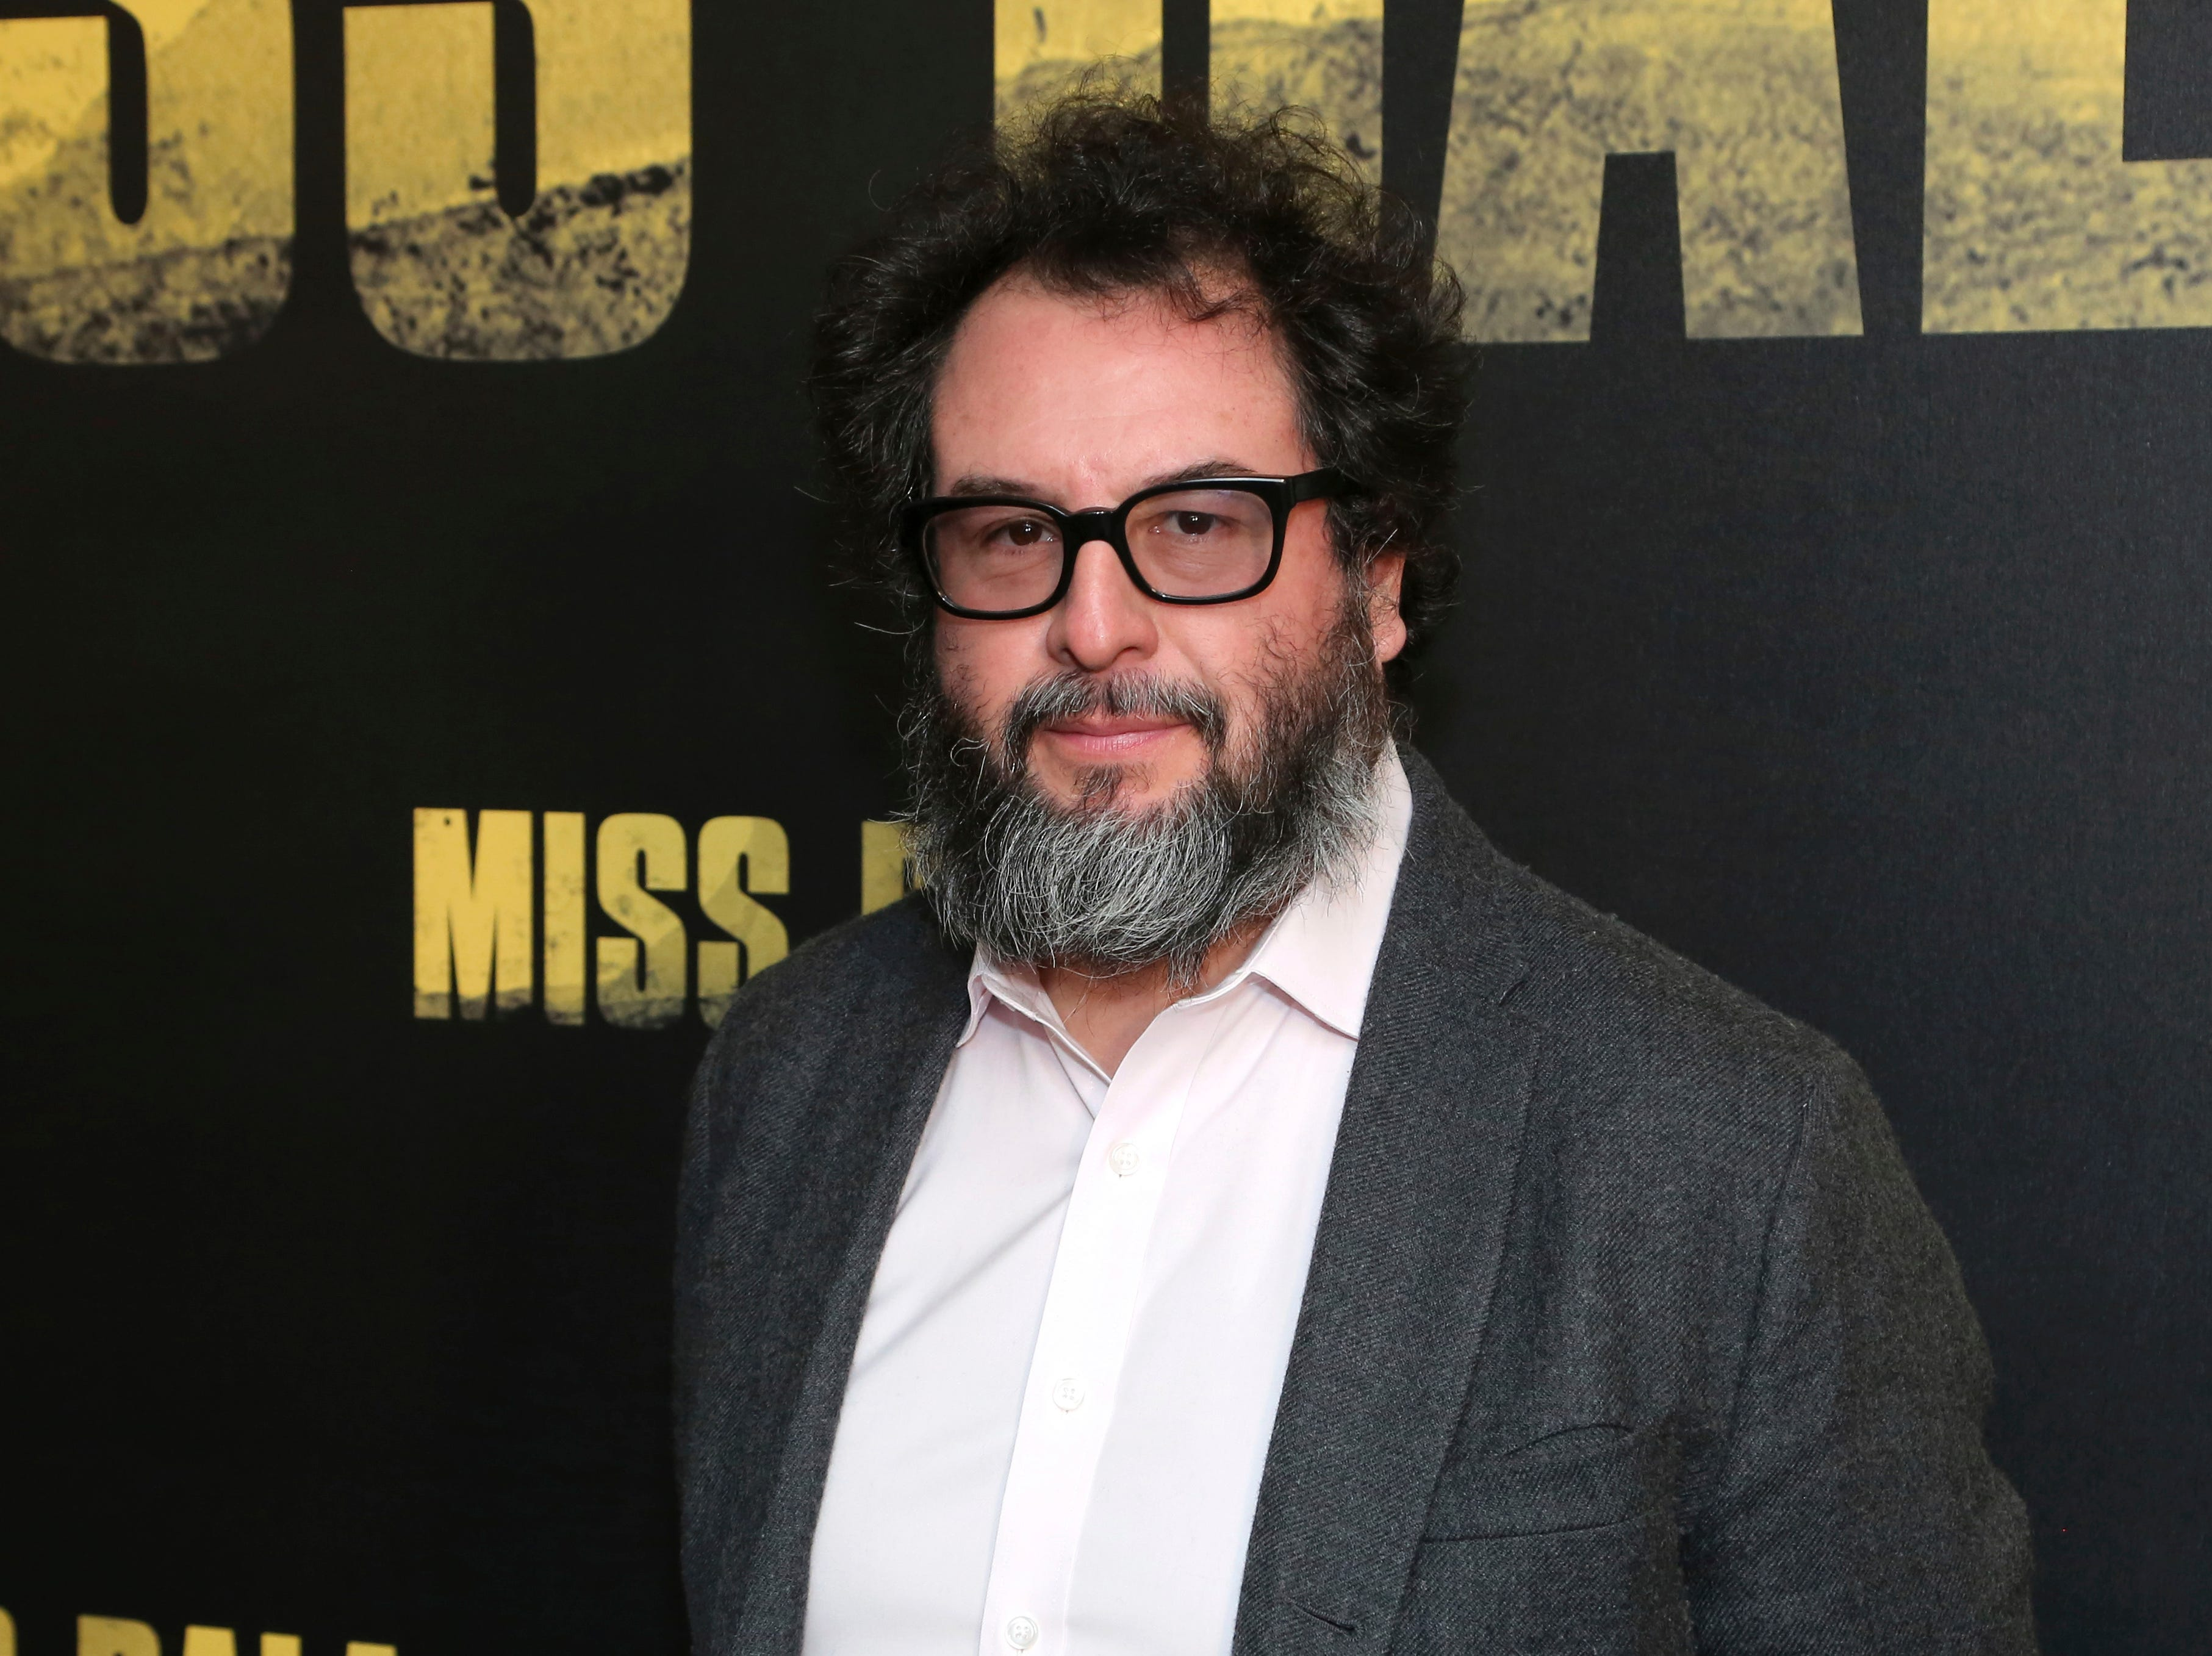 """Producer Pablo Cruz poses for a photo at the """"Miss Bala"""" Photo Call at The London West Hollywood on Sunday, Jan. 13, 2019 in West Hollywood, Calif."""